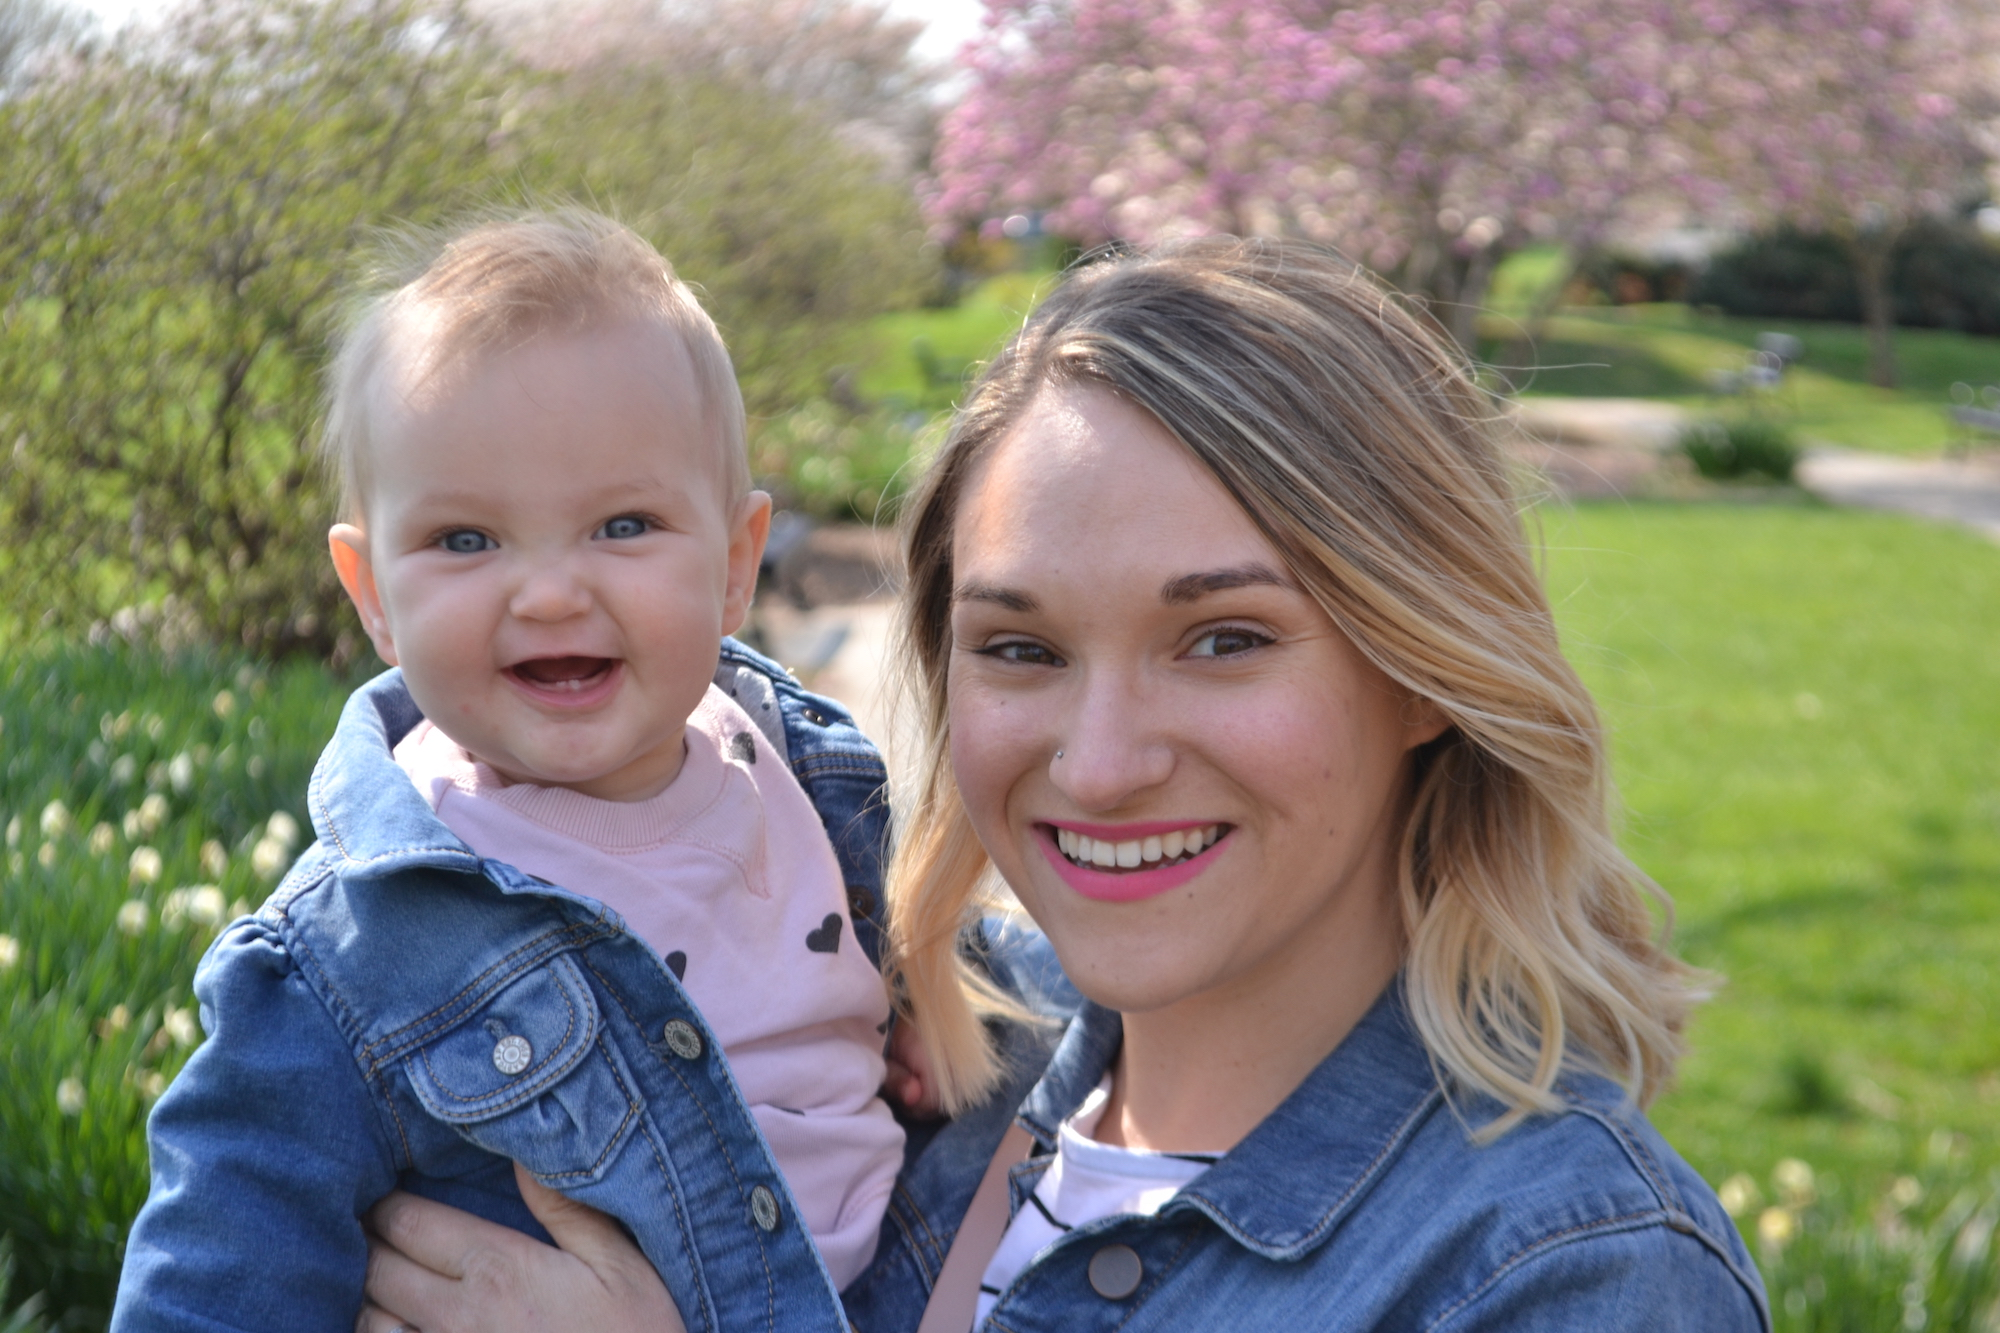 Me and my daughter Atti | BySarahRae.com